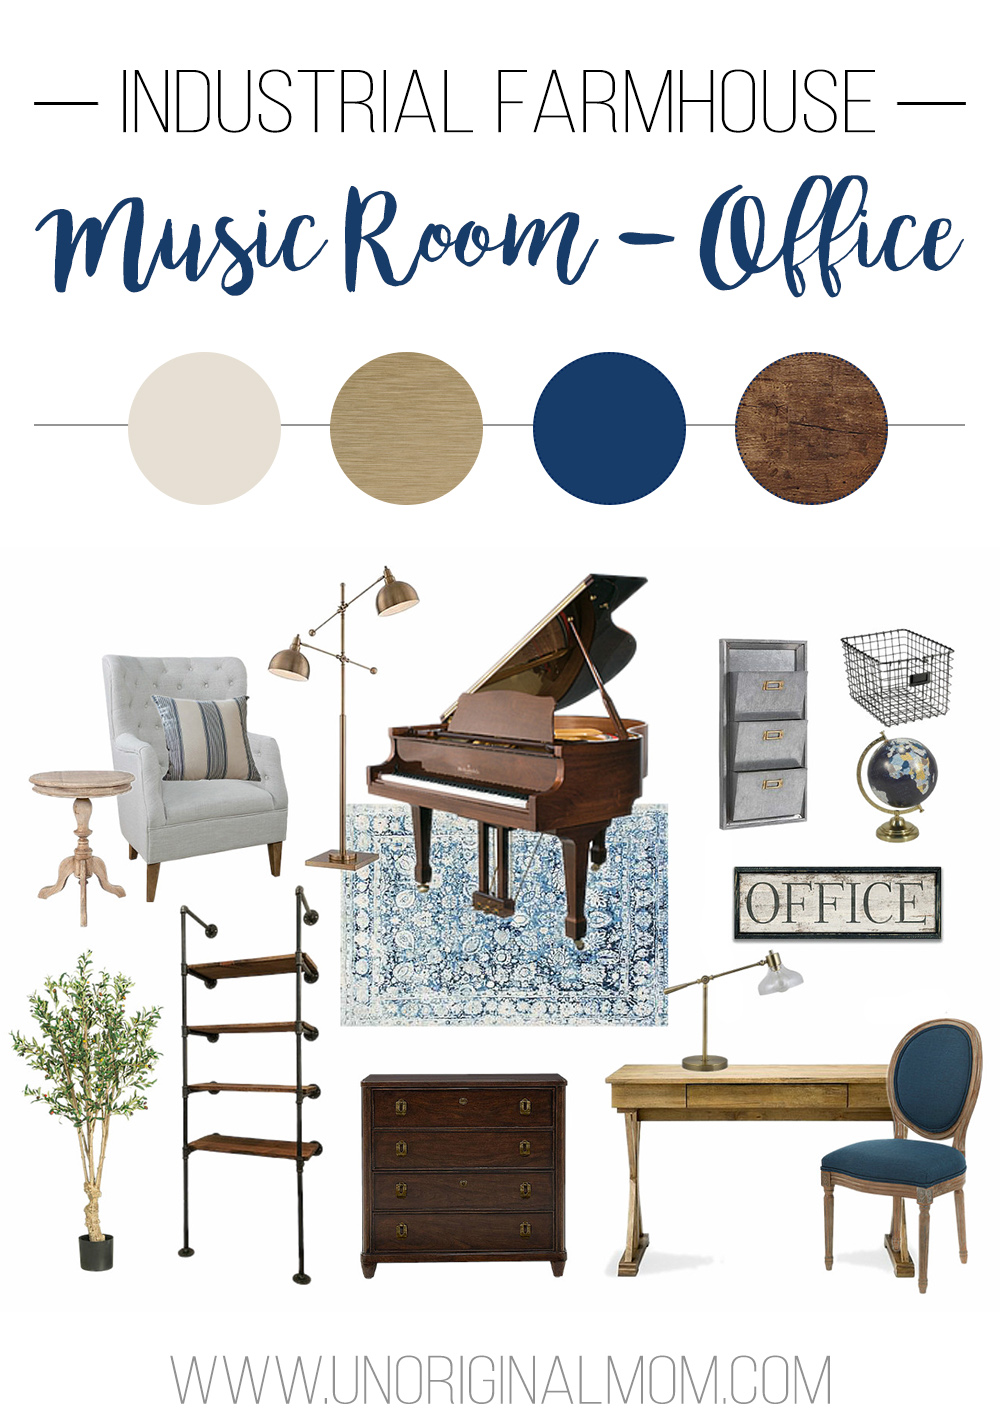 Before photos, design plan and mood board for an industrial farmhouse office/music room makeover! | industrial farmhouse office | music room | one room challenge | mood board | navy and gold